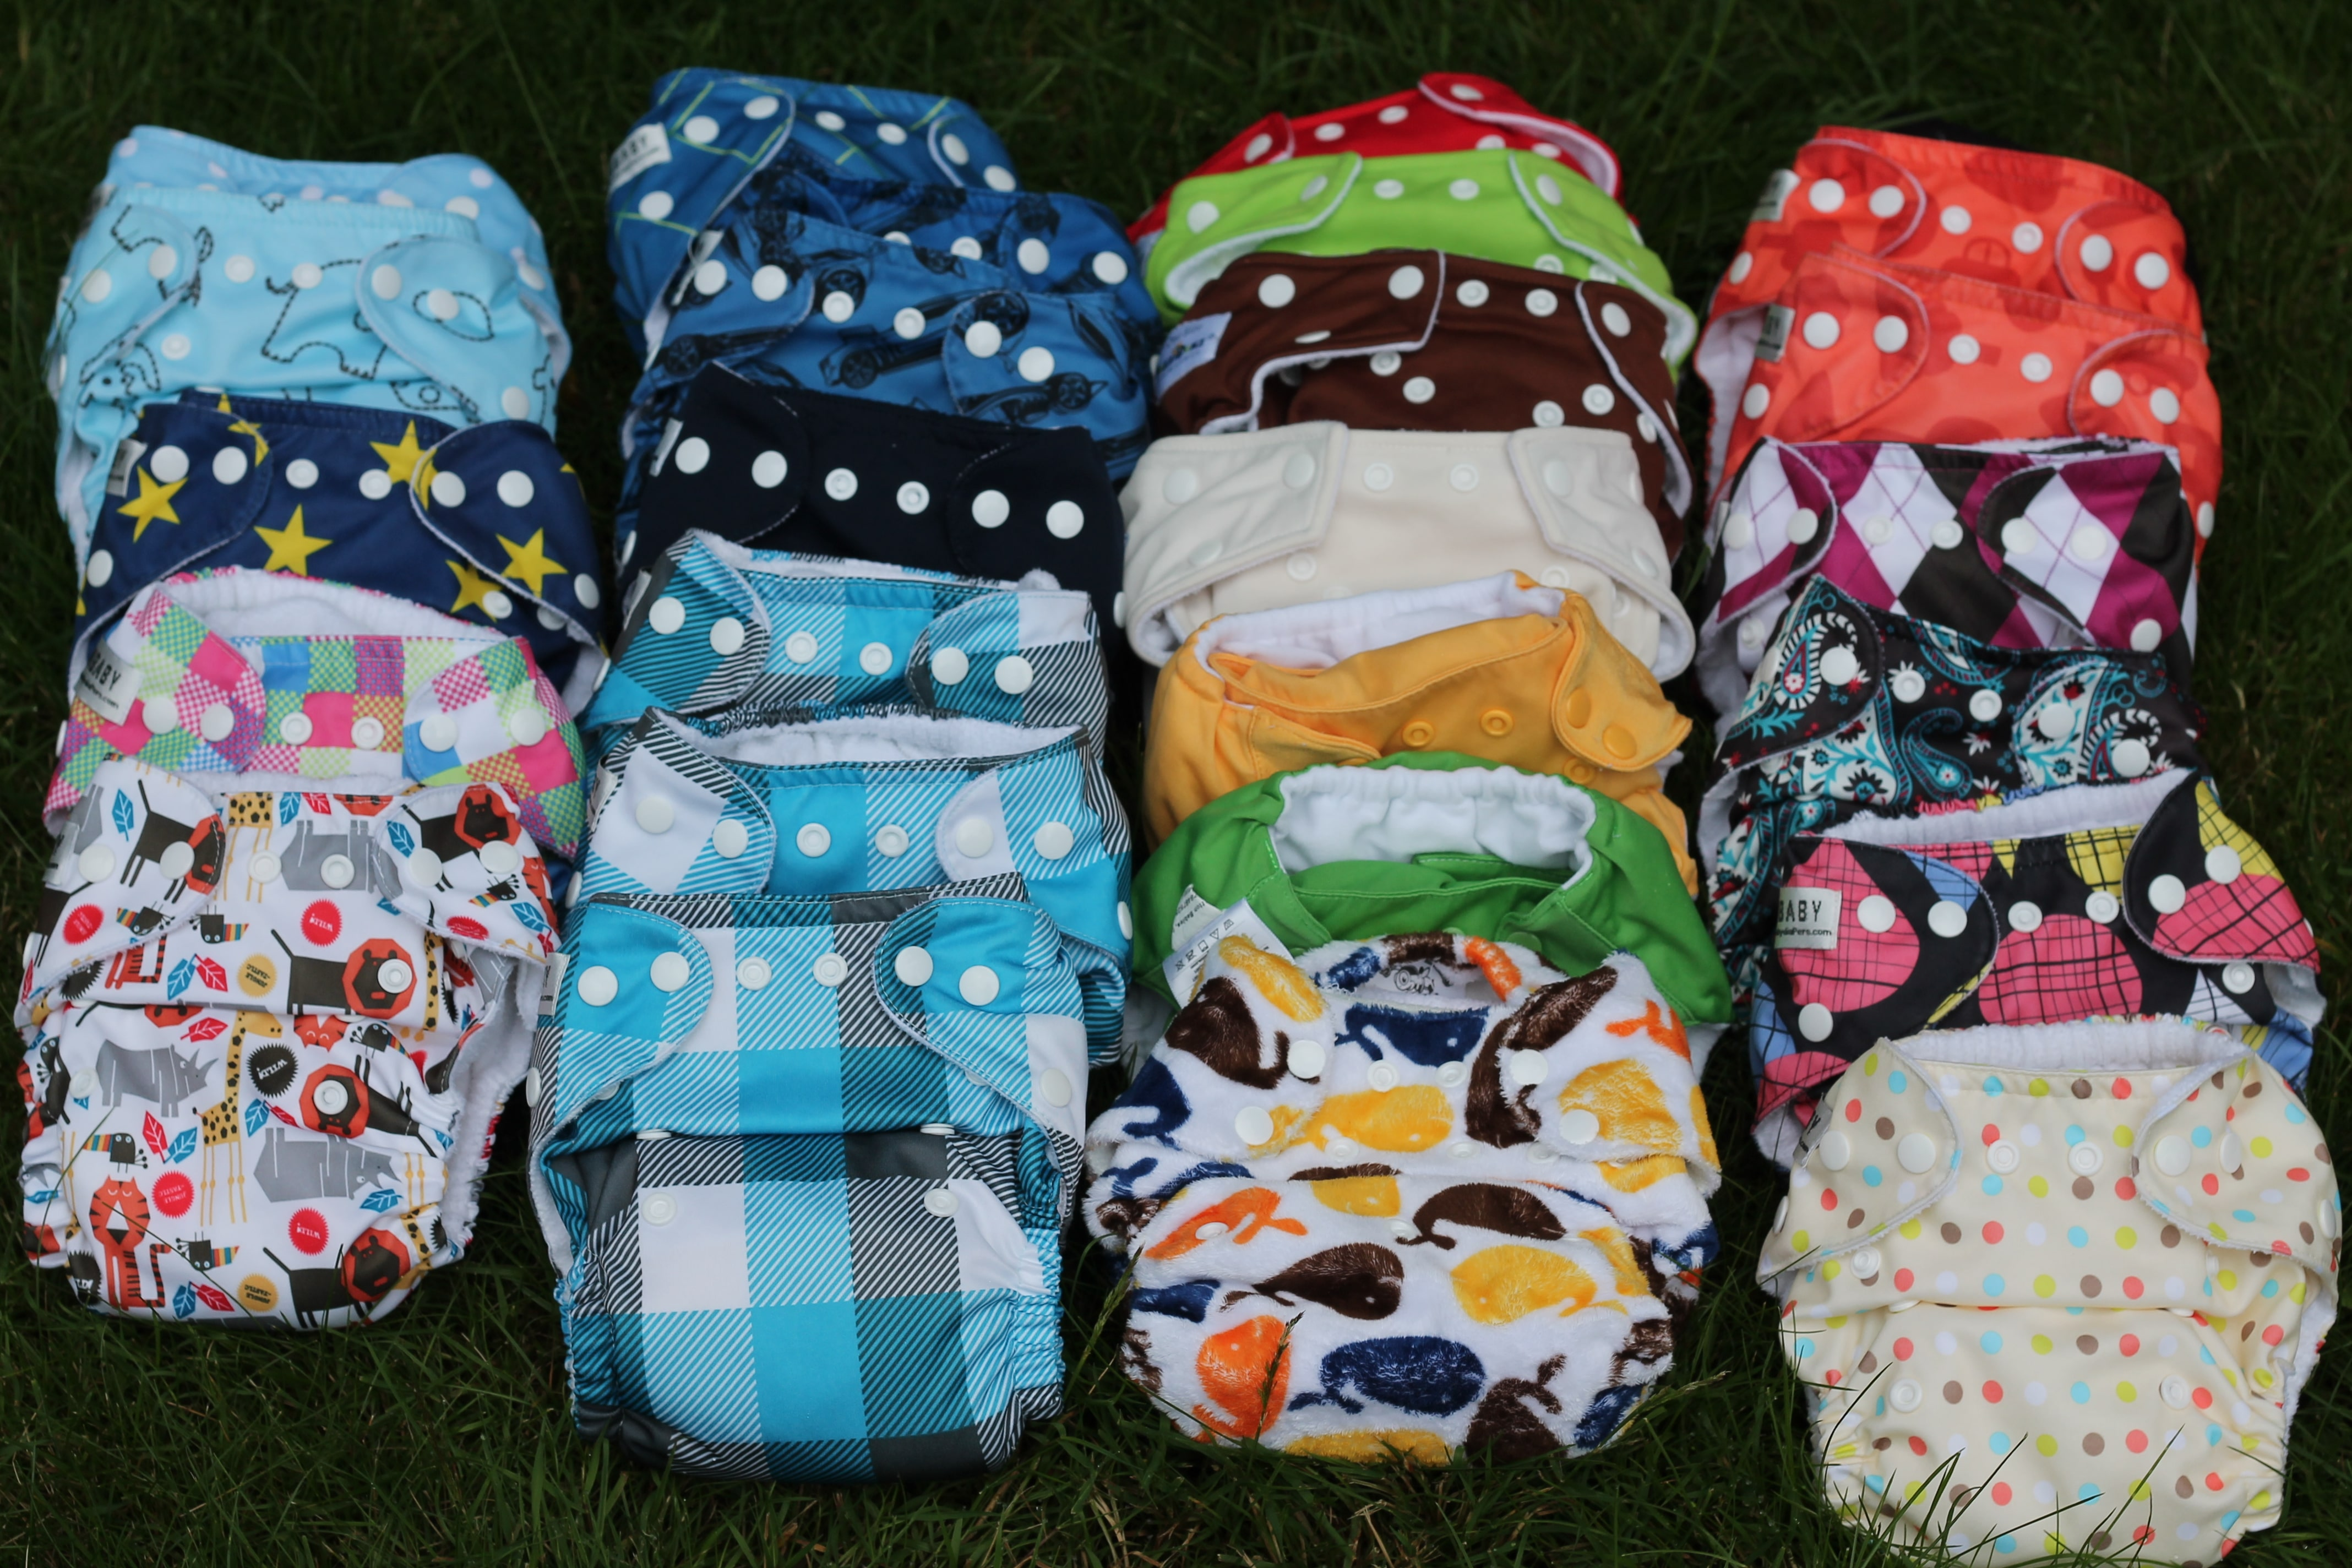 cloth vs diapers Today, the words cloth diaper bring to mind a double-layer cloth wrapped around a baby, fastened with safety pins although these still exist, there are newer and improved versions of a cloth diaper, complete with waterproof liner, softer fabric and dozens of snaps to make them super adjustable.